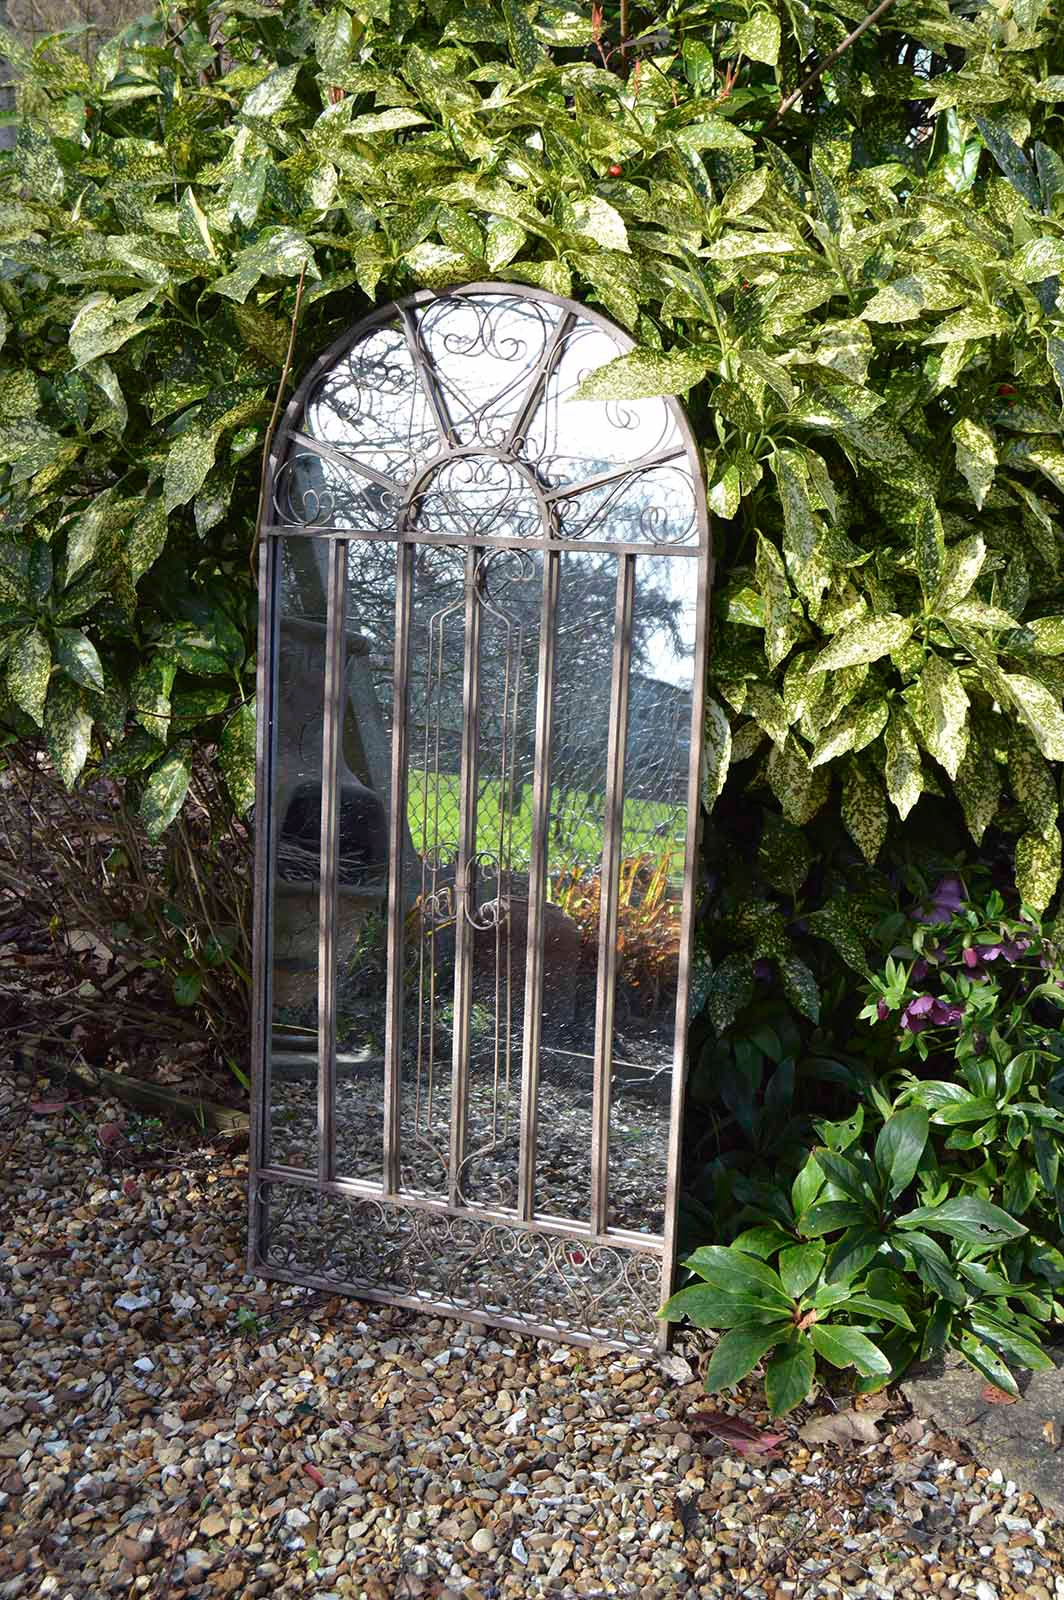 Garden Mirrors Applications To Reflect The Outdoor And Styles Regarding Outside Garden Mirrors (View 3 of 14)